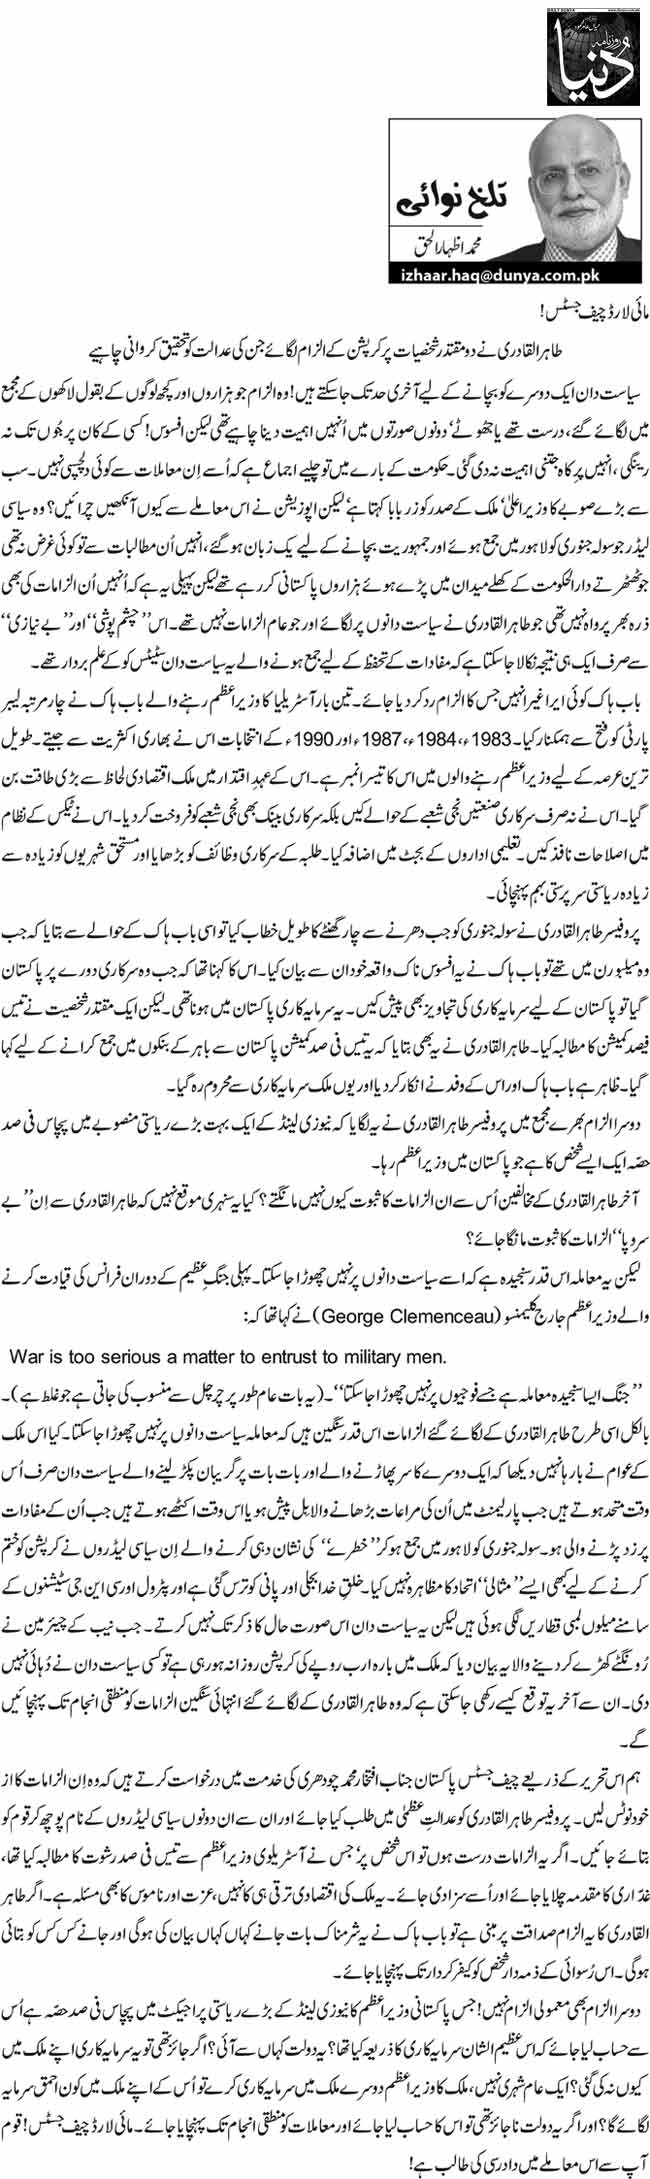 My Lord Chief Justice! - M. Izhar ul Haq